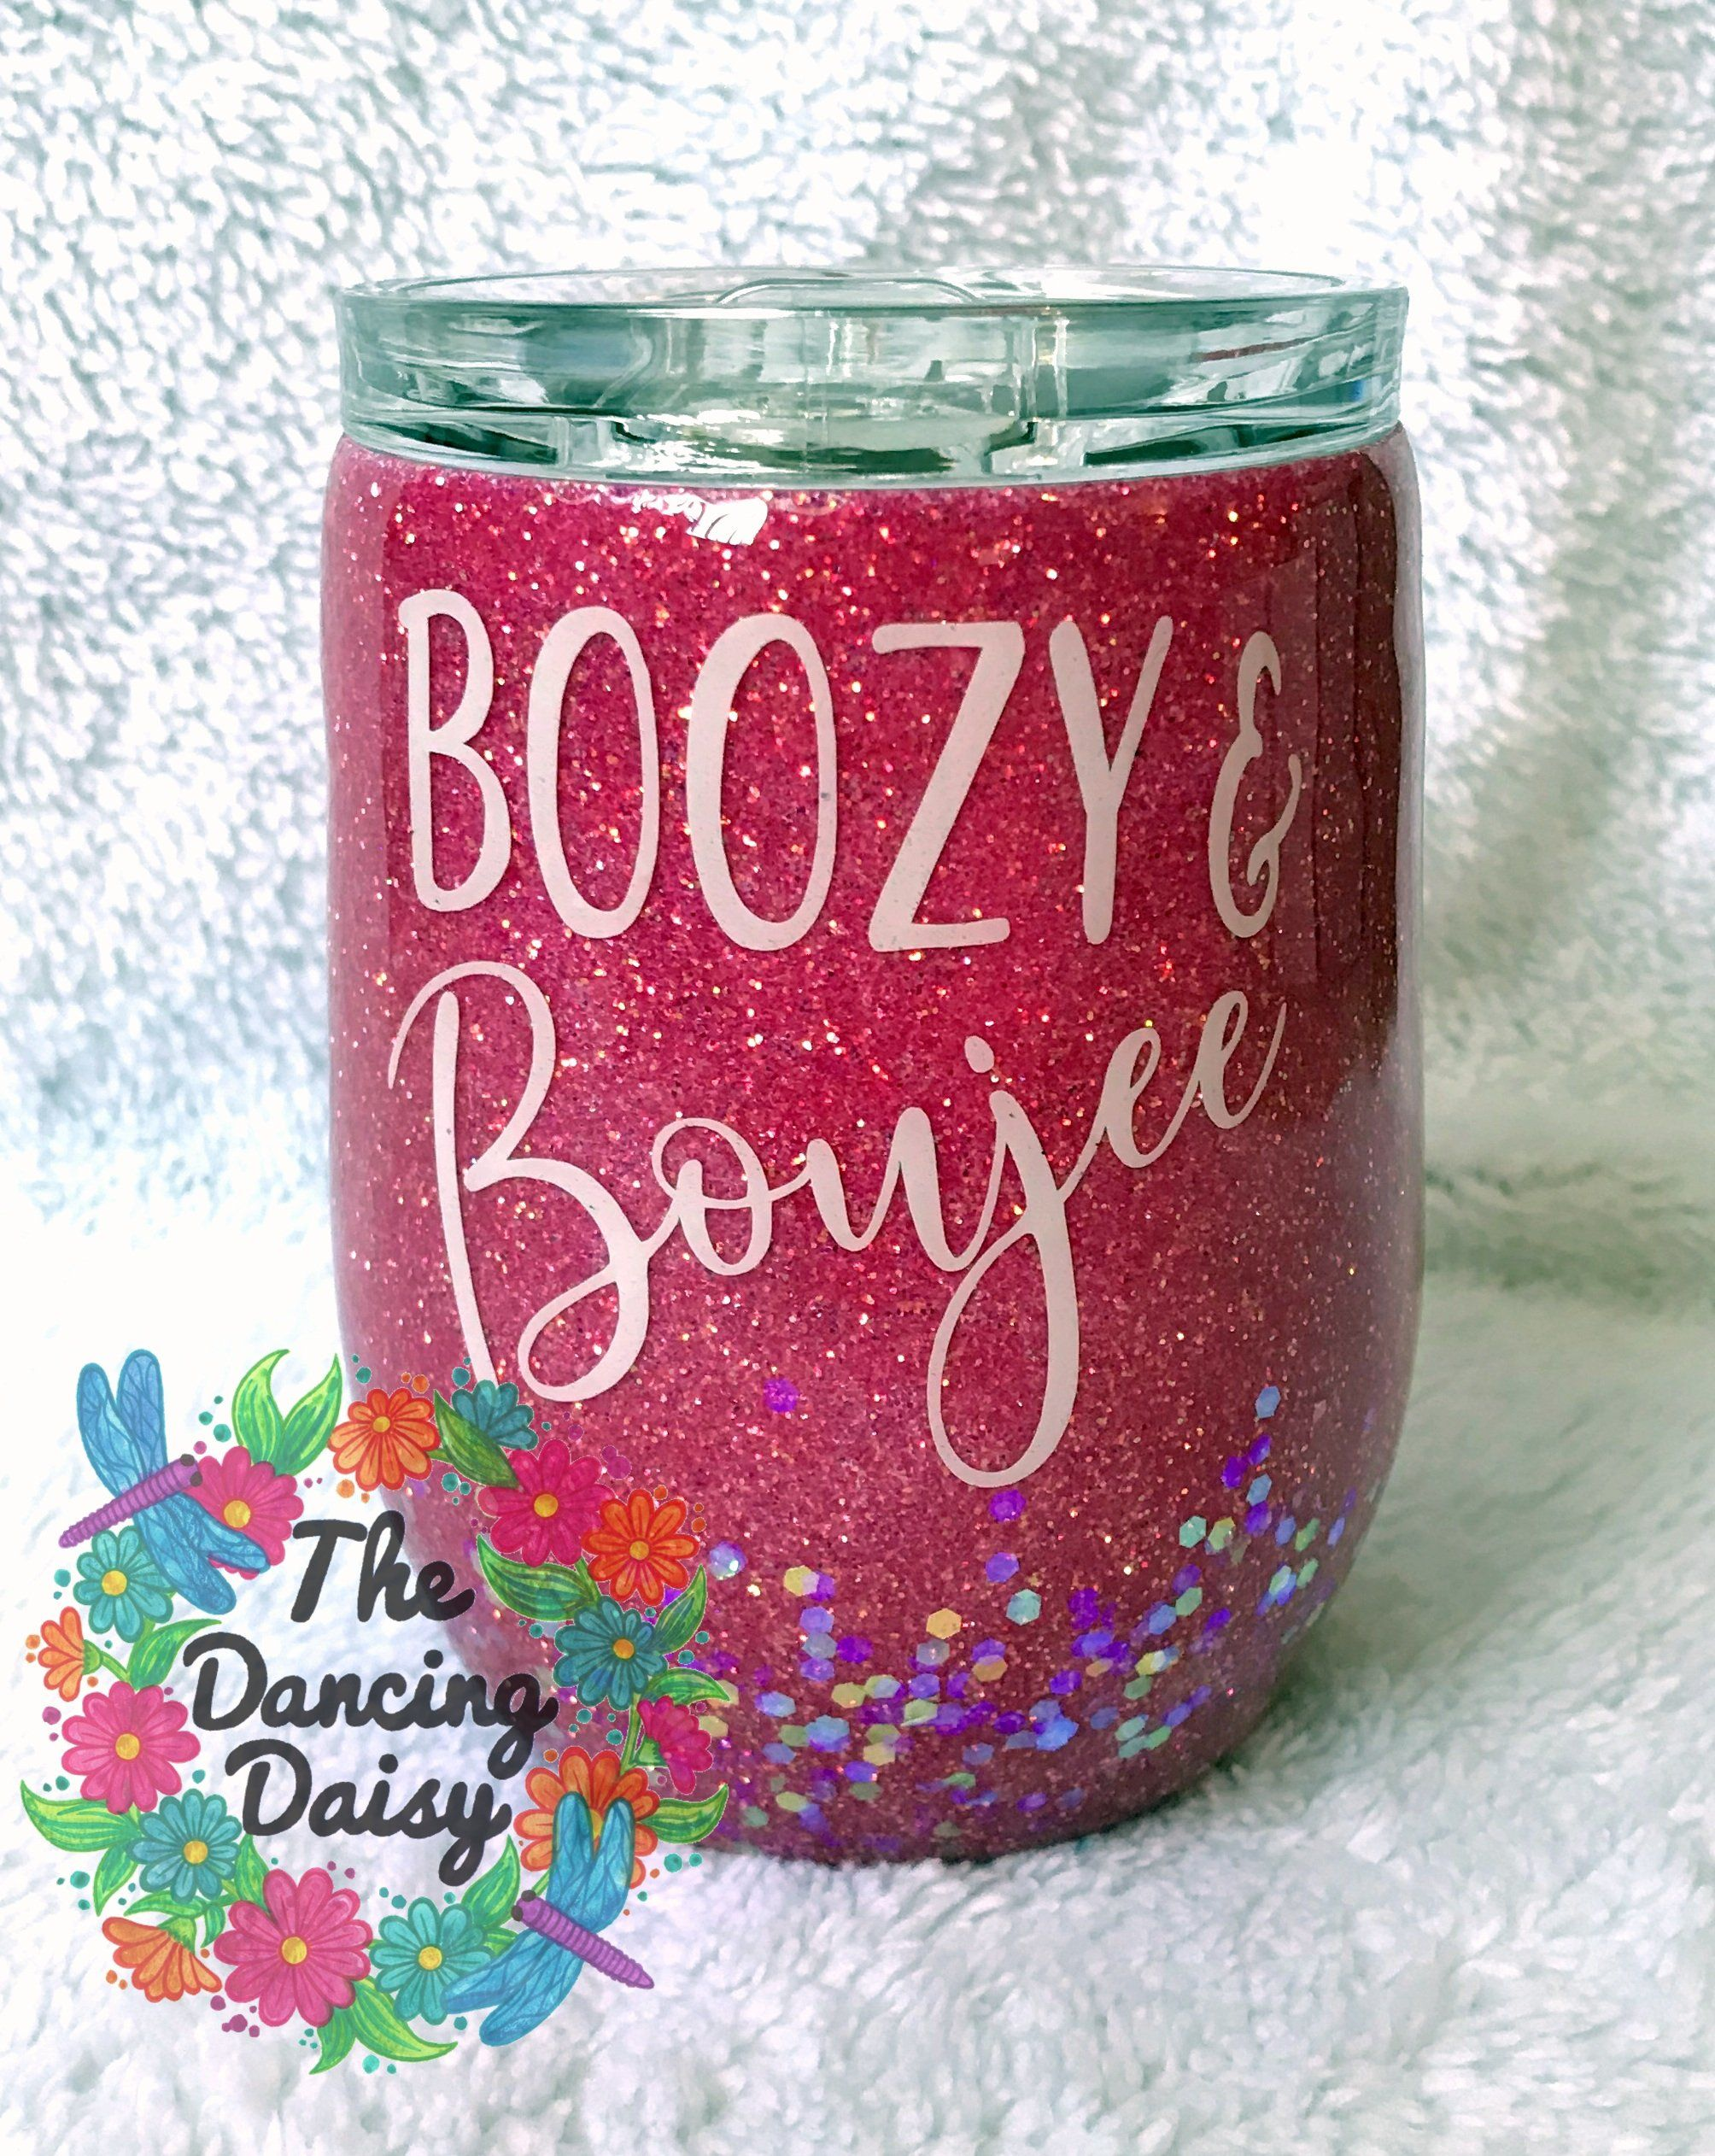 Boozy And Boujee 12 Oz Stemless Wine Glass Tumbler Acryliccrafts Customwork Thedancingdaisy Acrylic Custom Tumbler Cups Tumbler Cups Diy Custom Tumblers